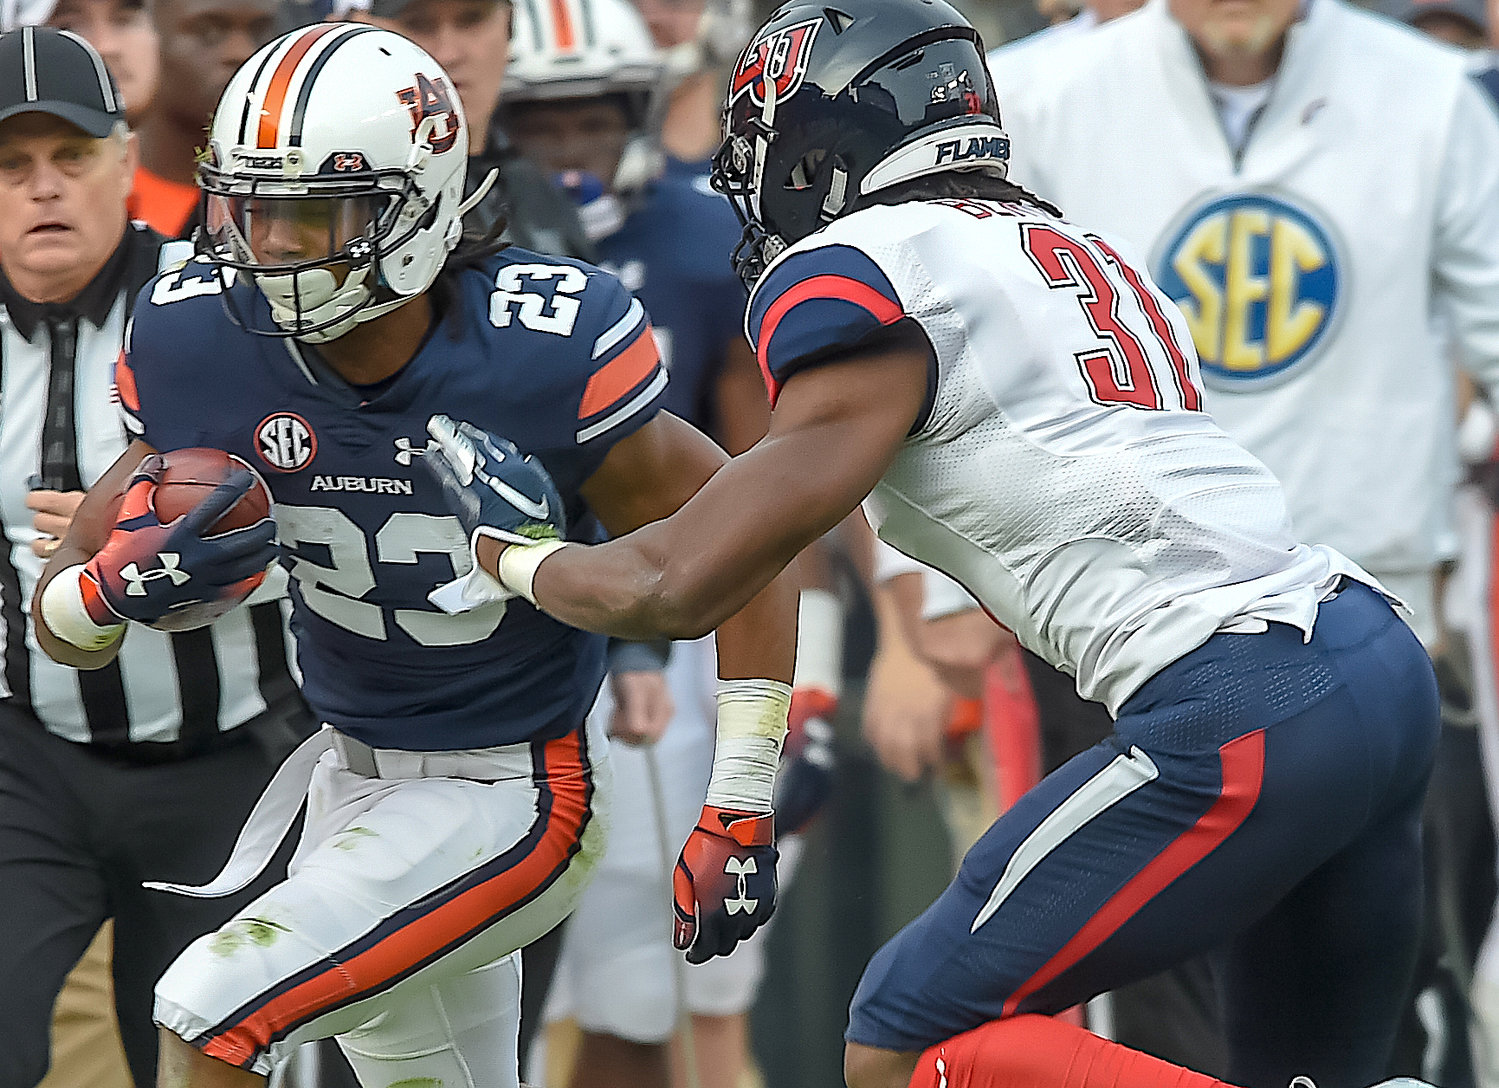 Auburn Tigers wide receiver Ryan Davis (23) is pushed pout of bounds by Liberty Flames safety Elijah Benton (31) during the first half of their game Saturday at Jordan-Hare Stadium in Auburn.